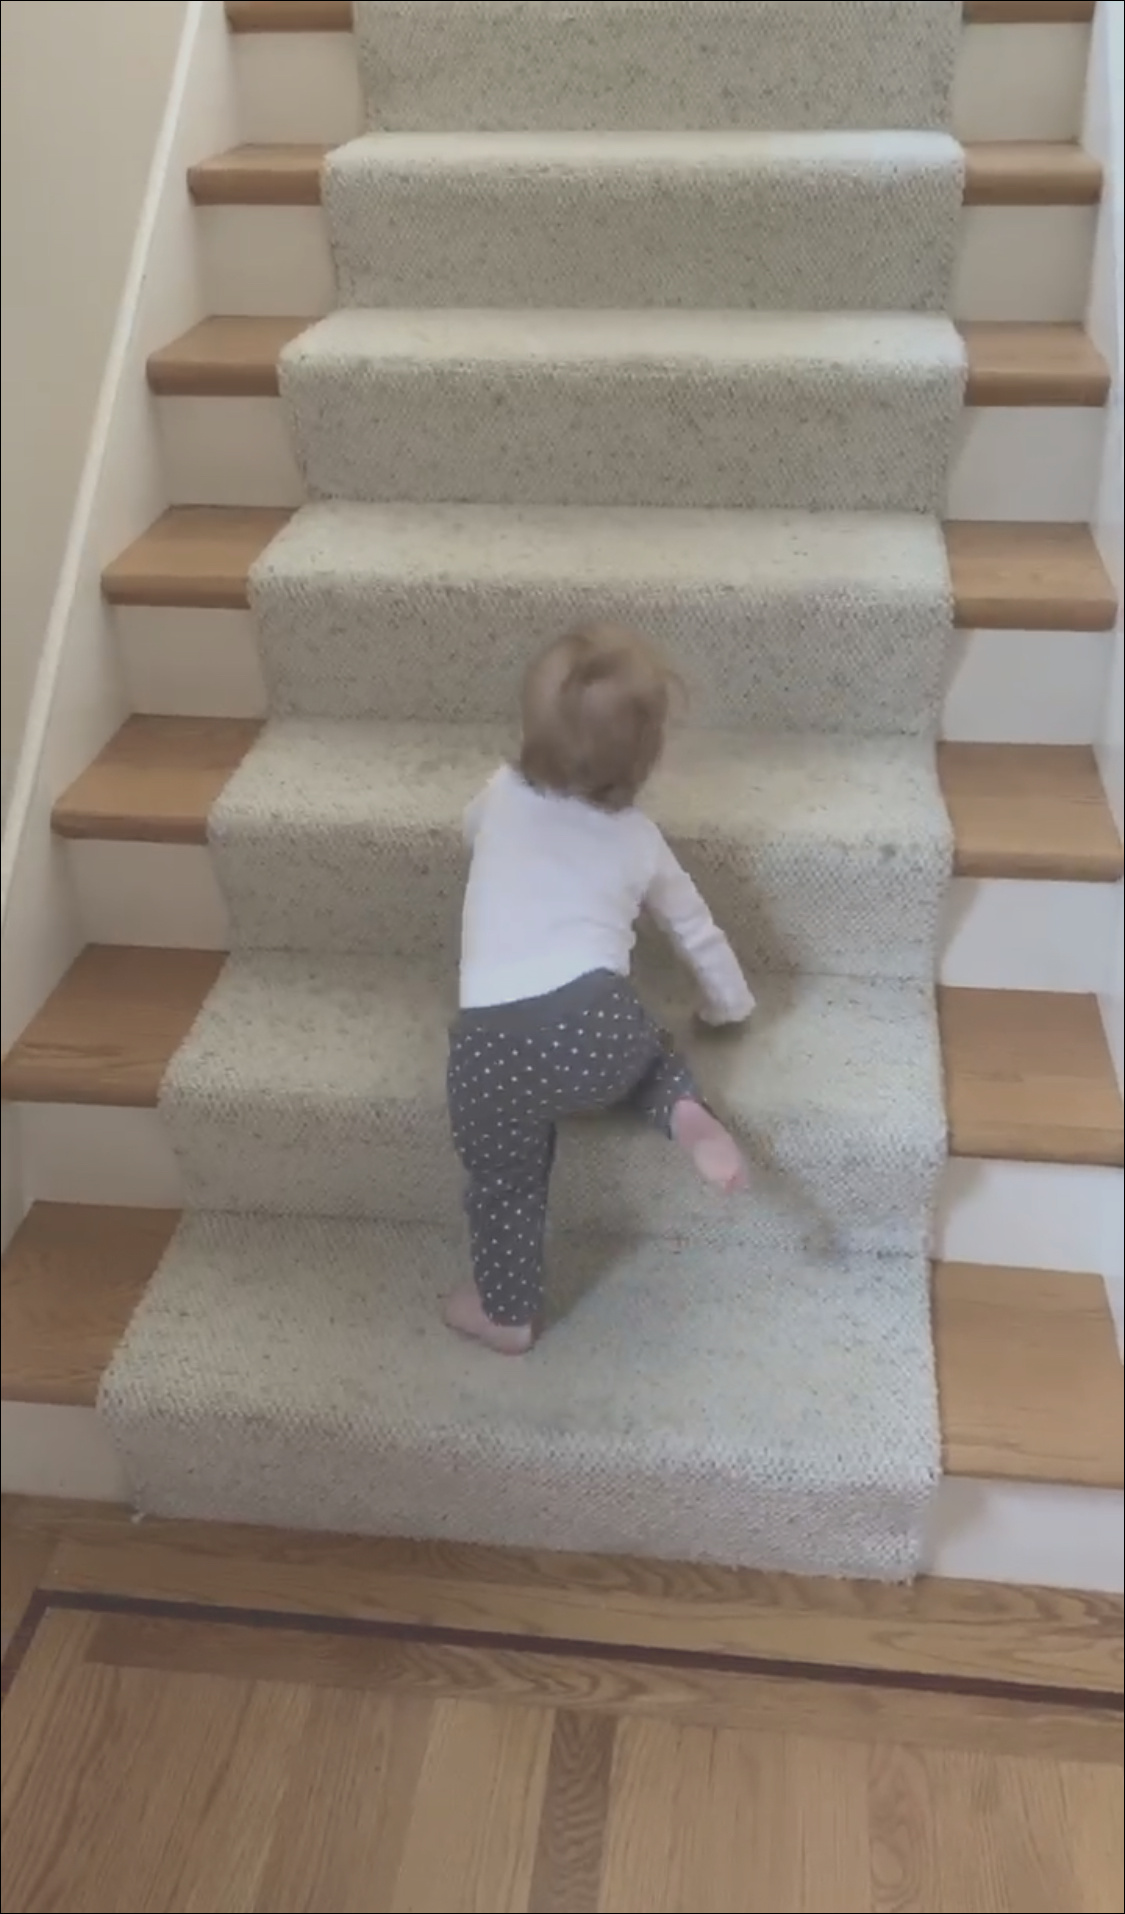 crawling up stairs